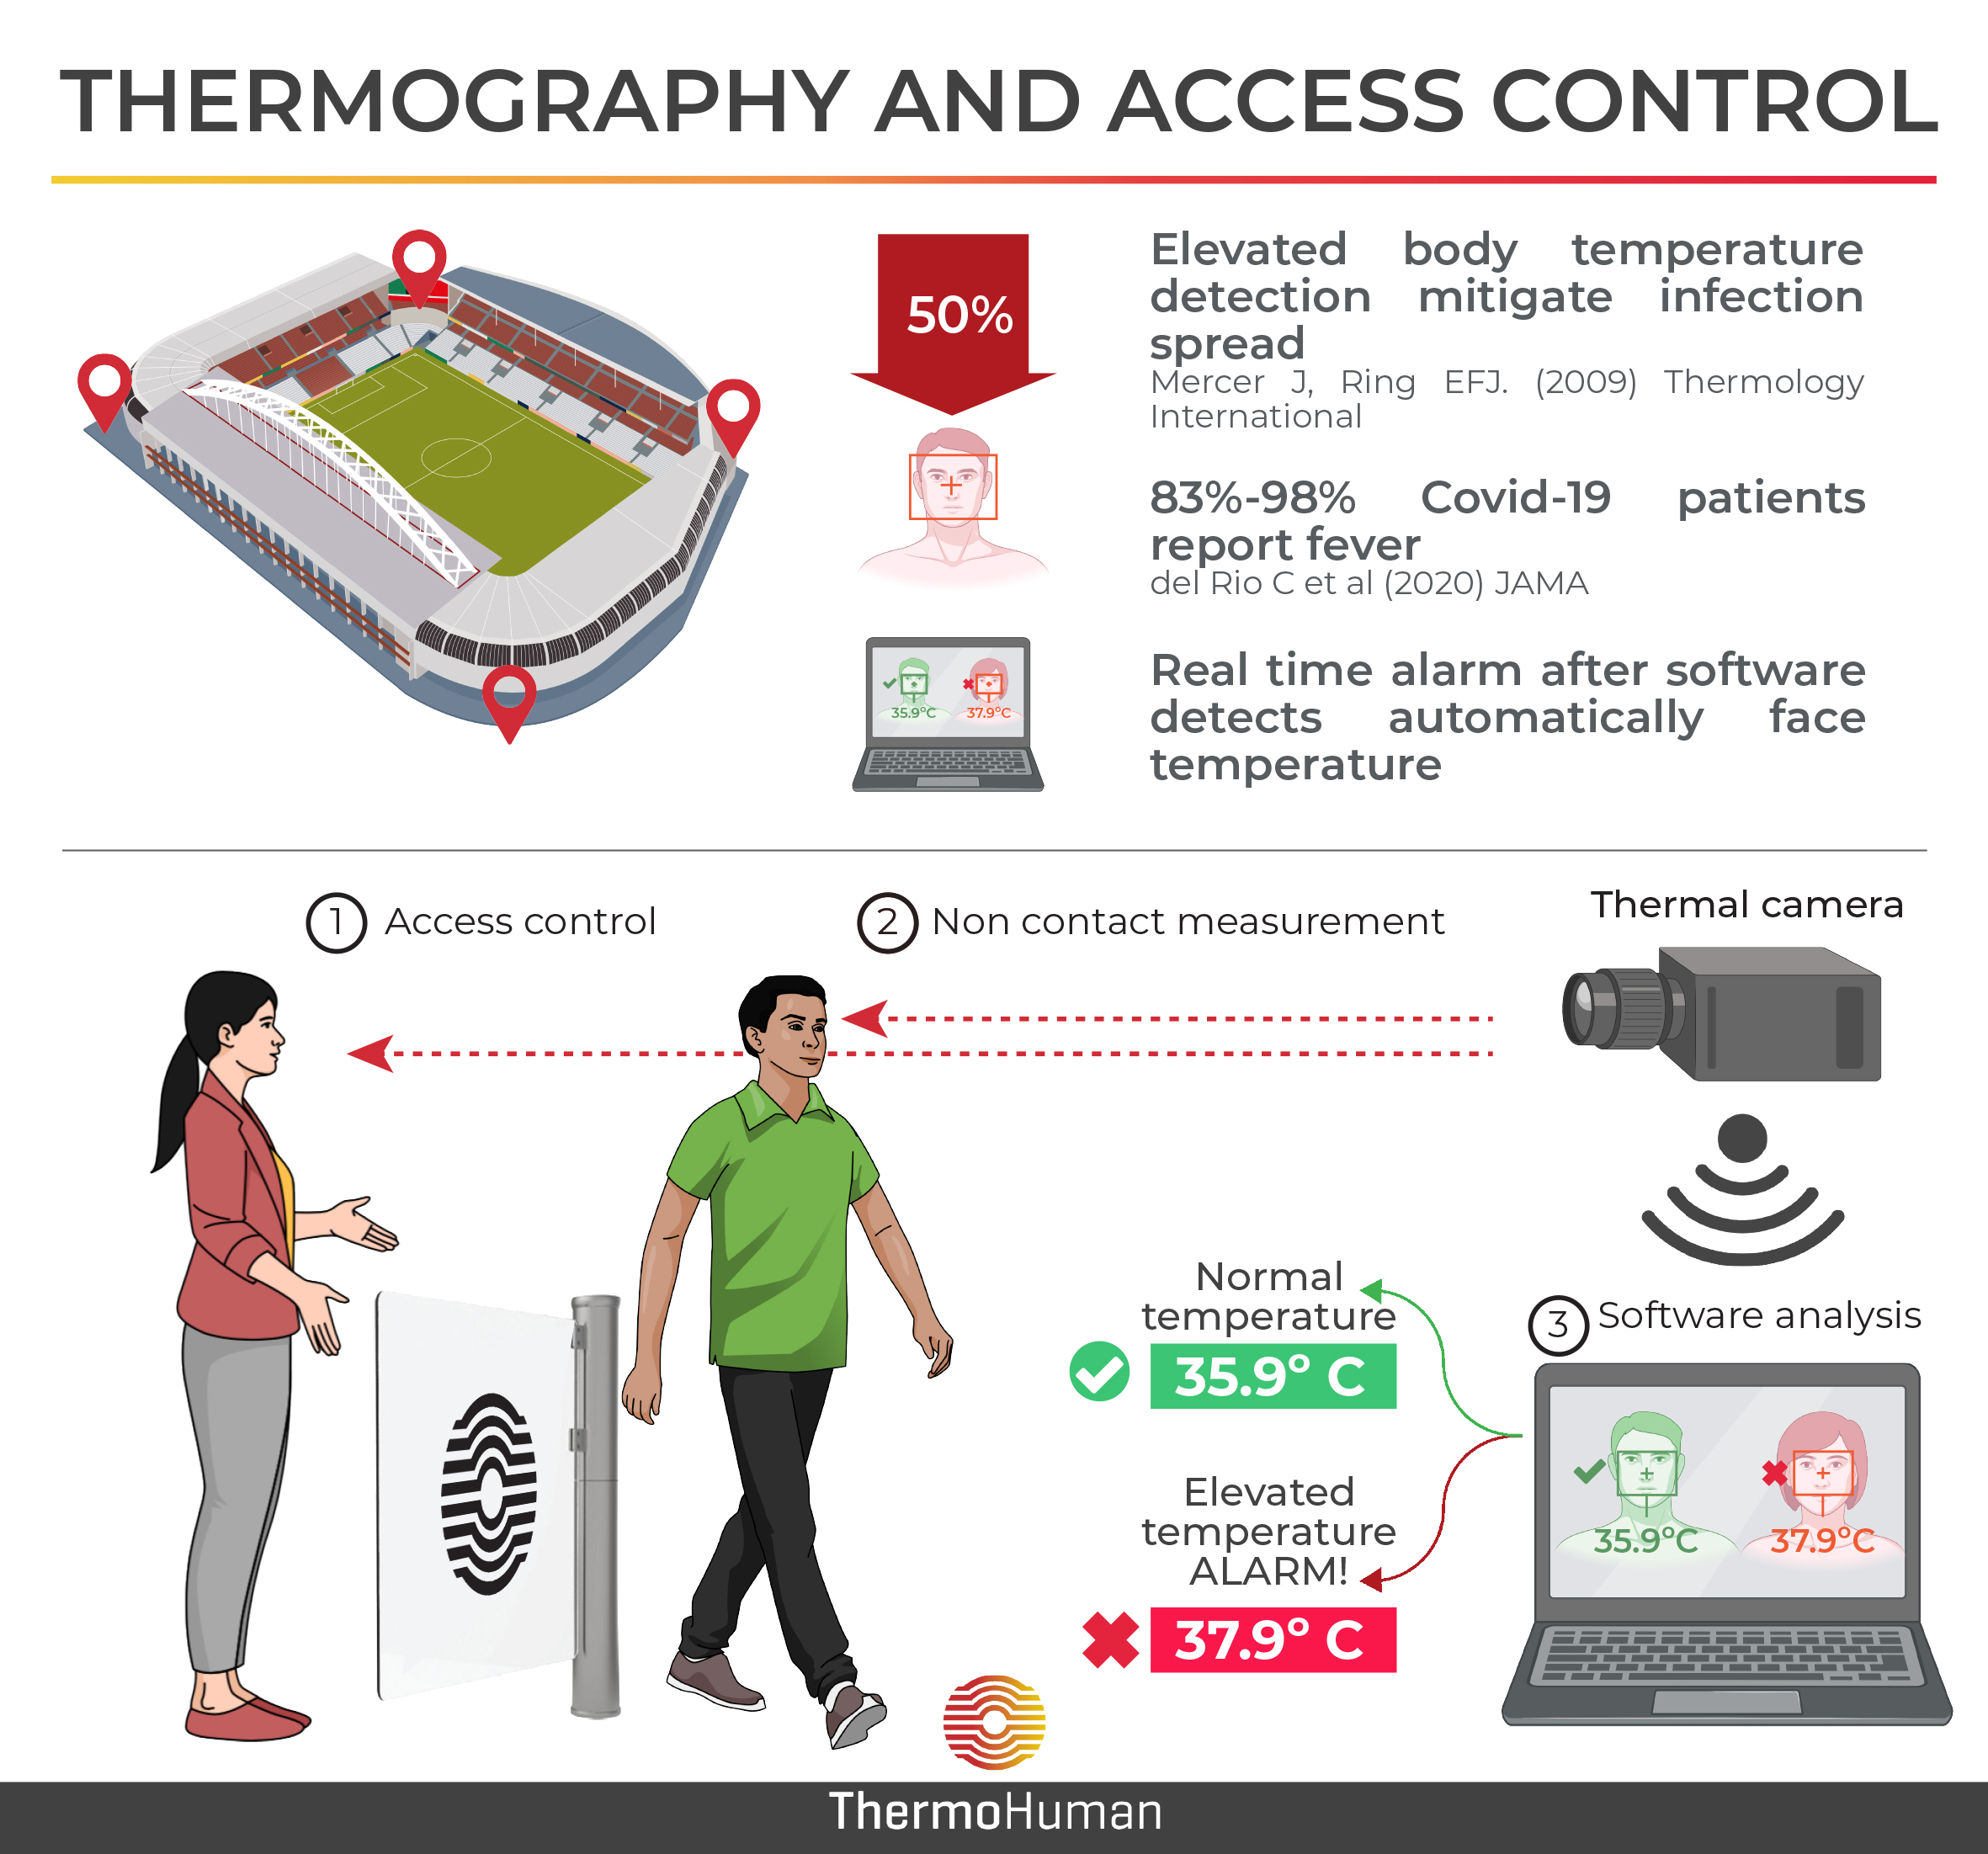 Thermography and access control